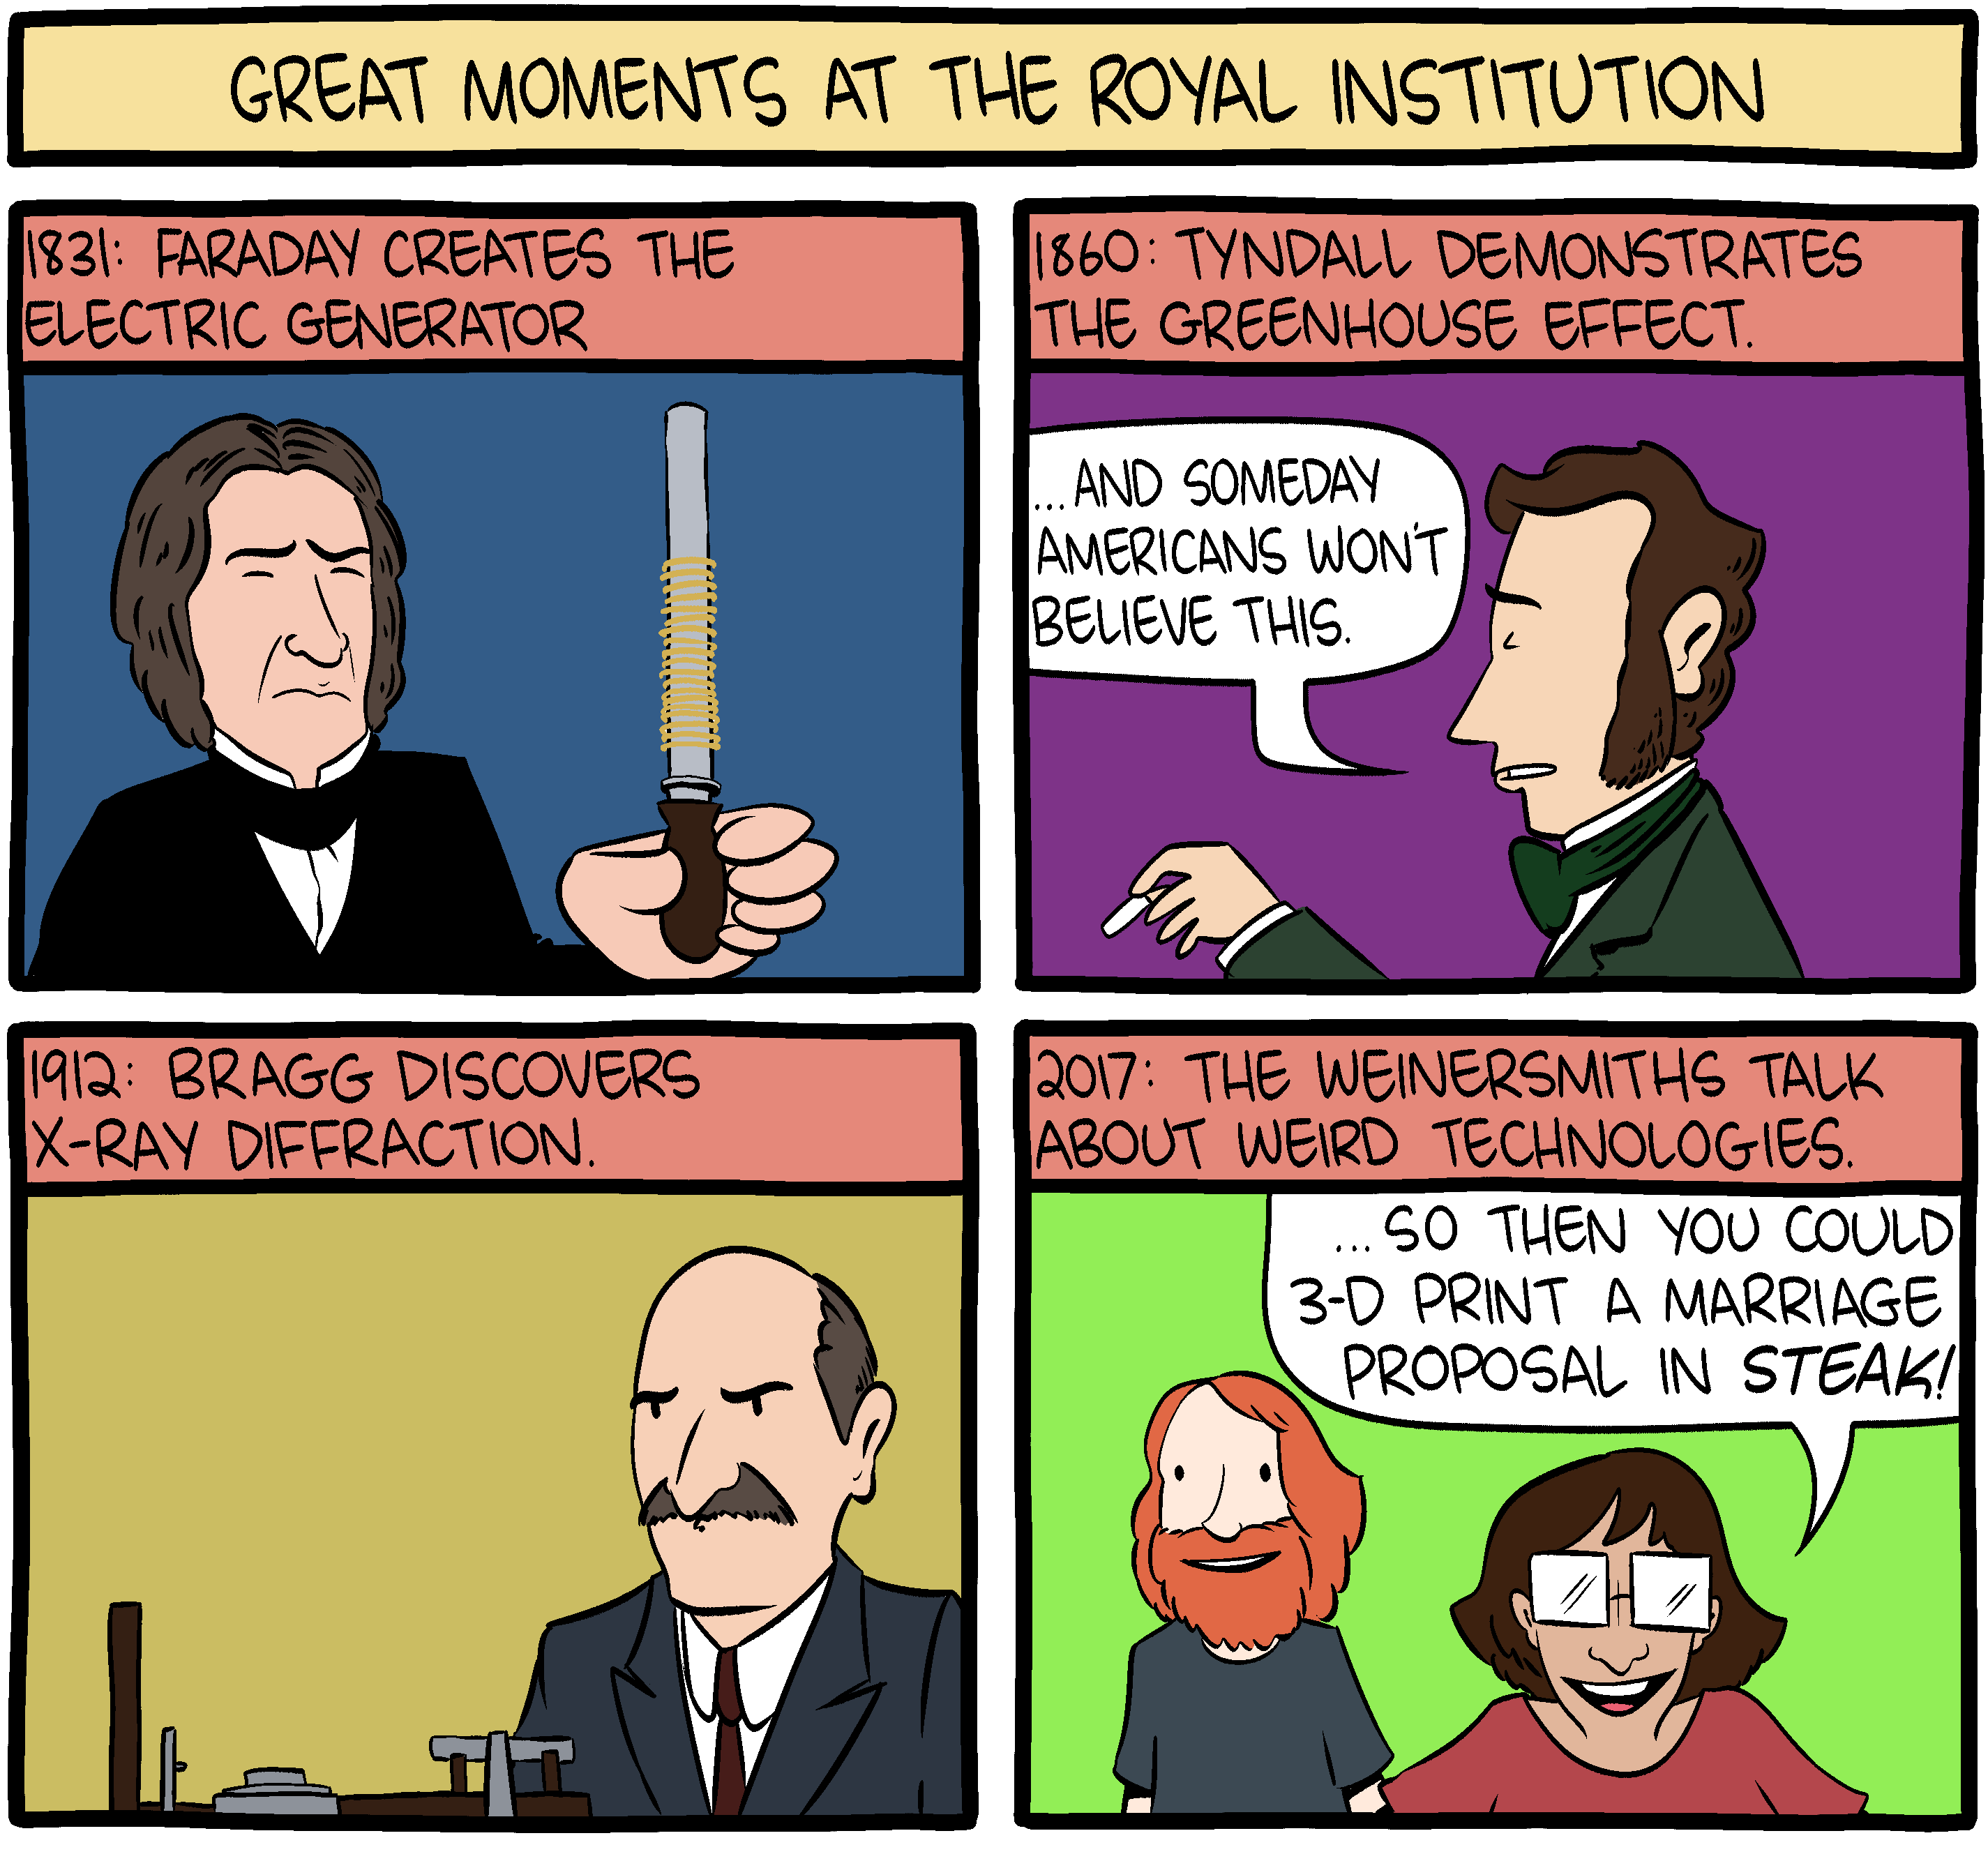 Great moments at the Royal Institution